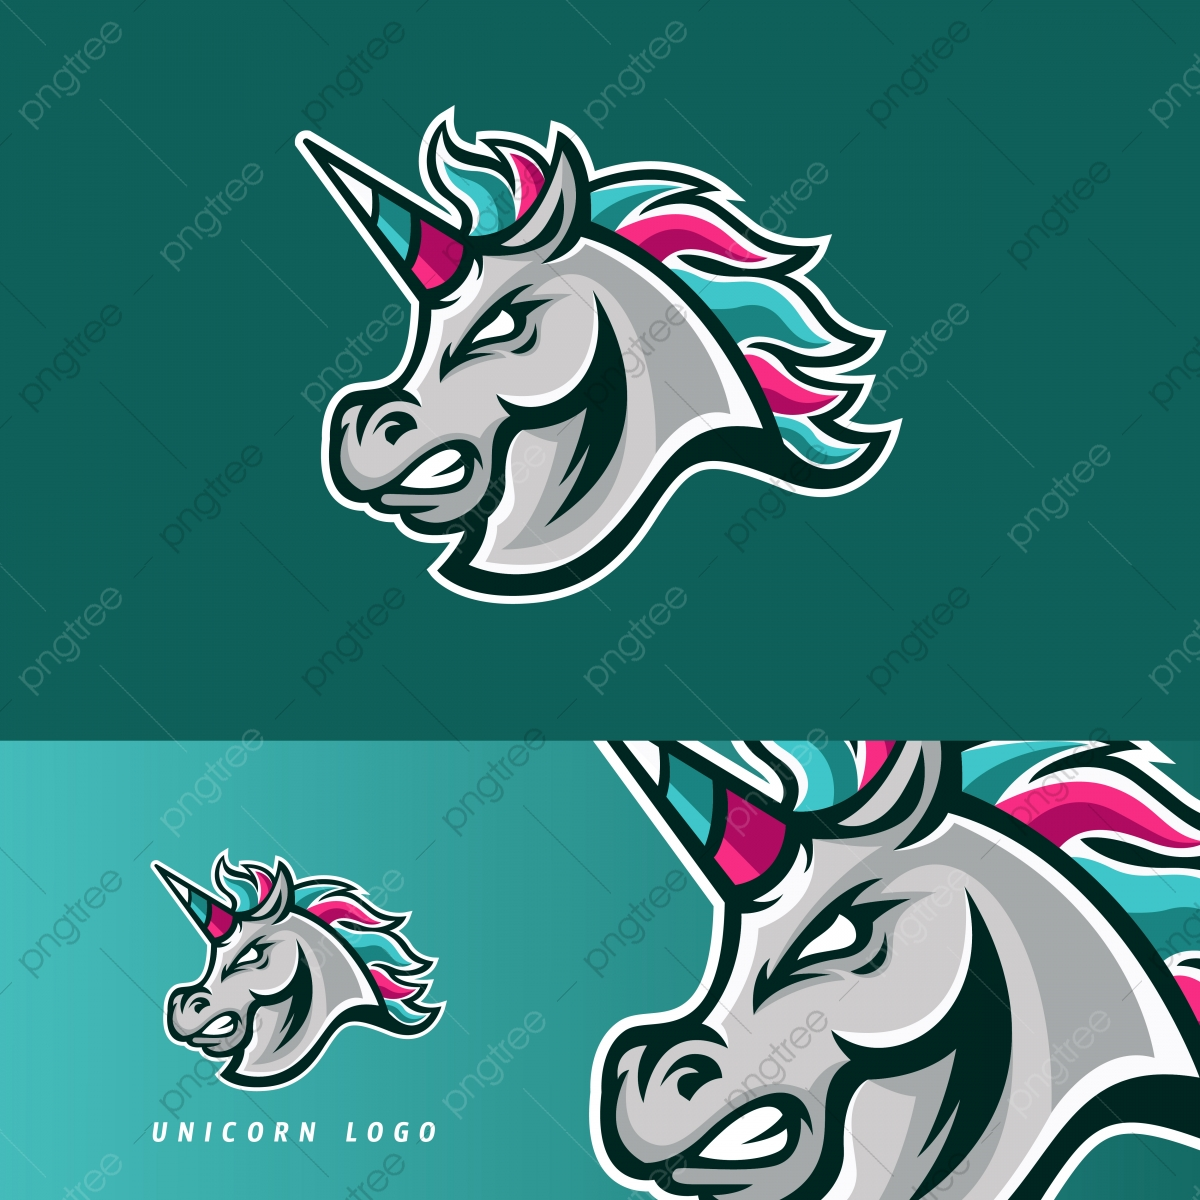 Unicorn Horse Esport Gaming Mascot Logo Template Template Download On Pngtree